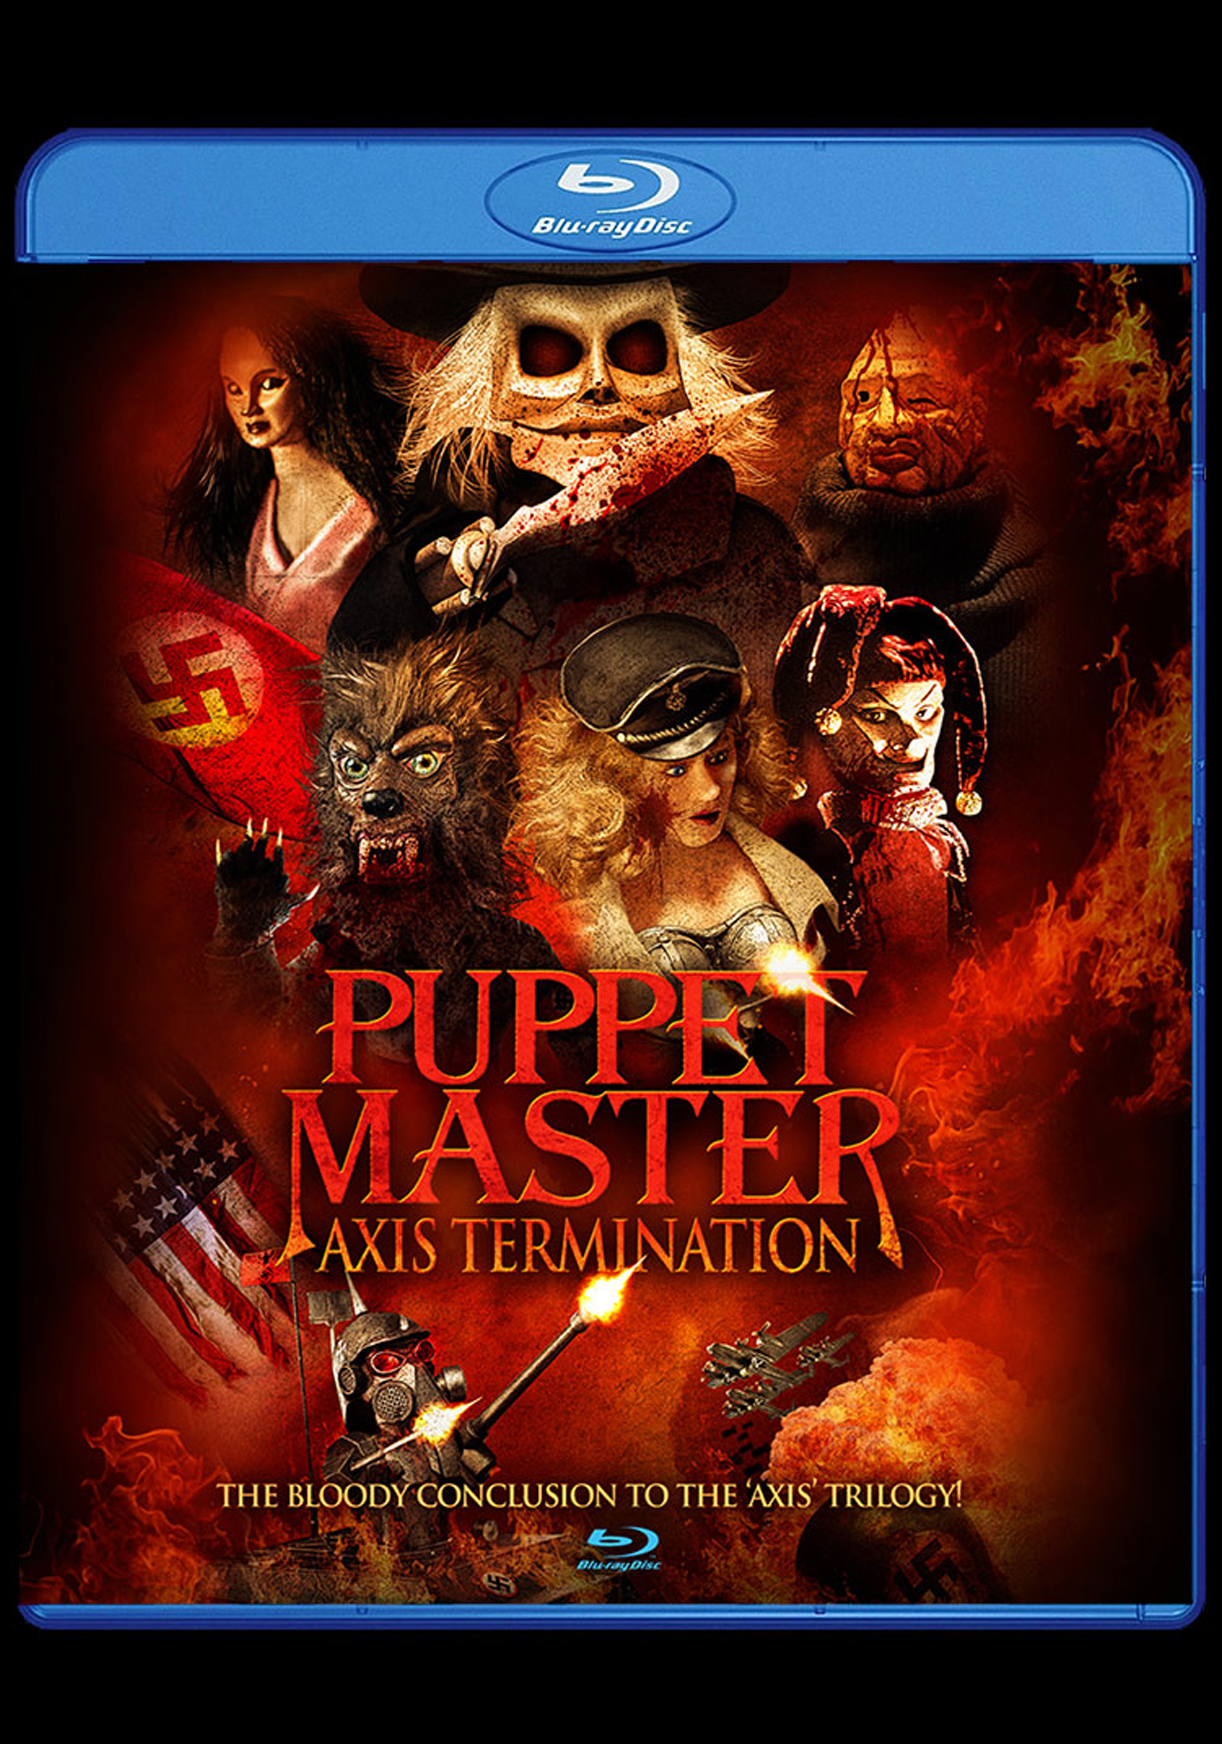 Puppet Master: Axis Termination   Blu-Ray  $24.95